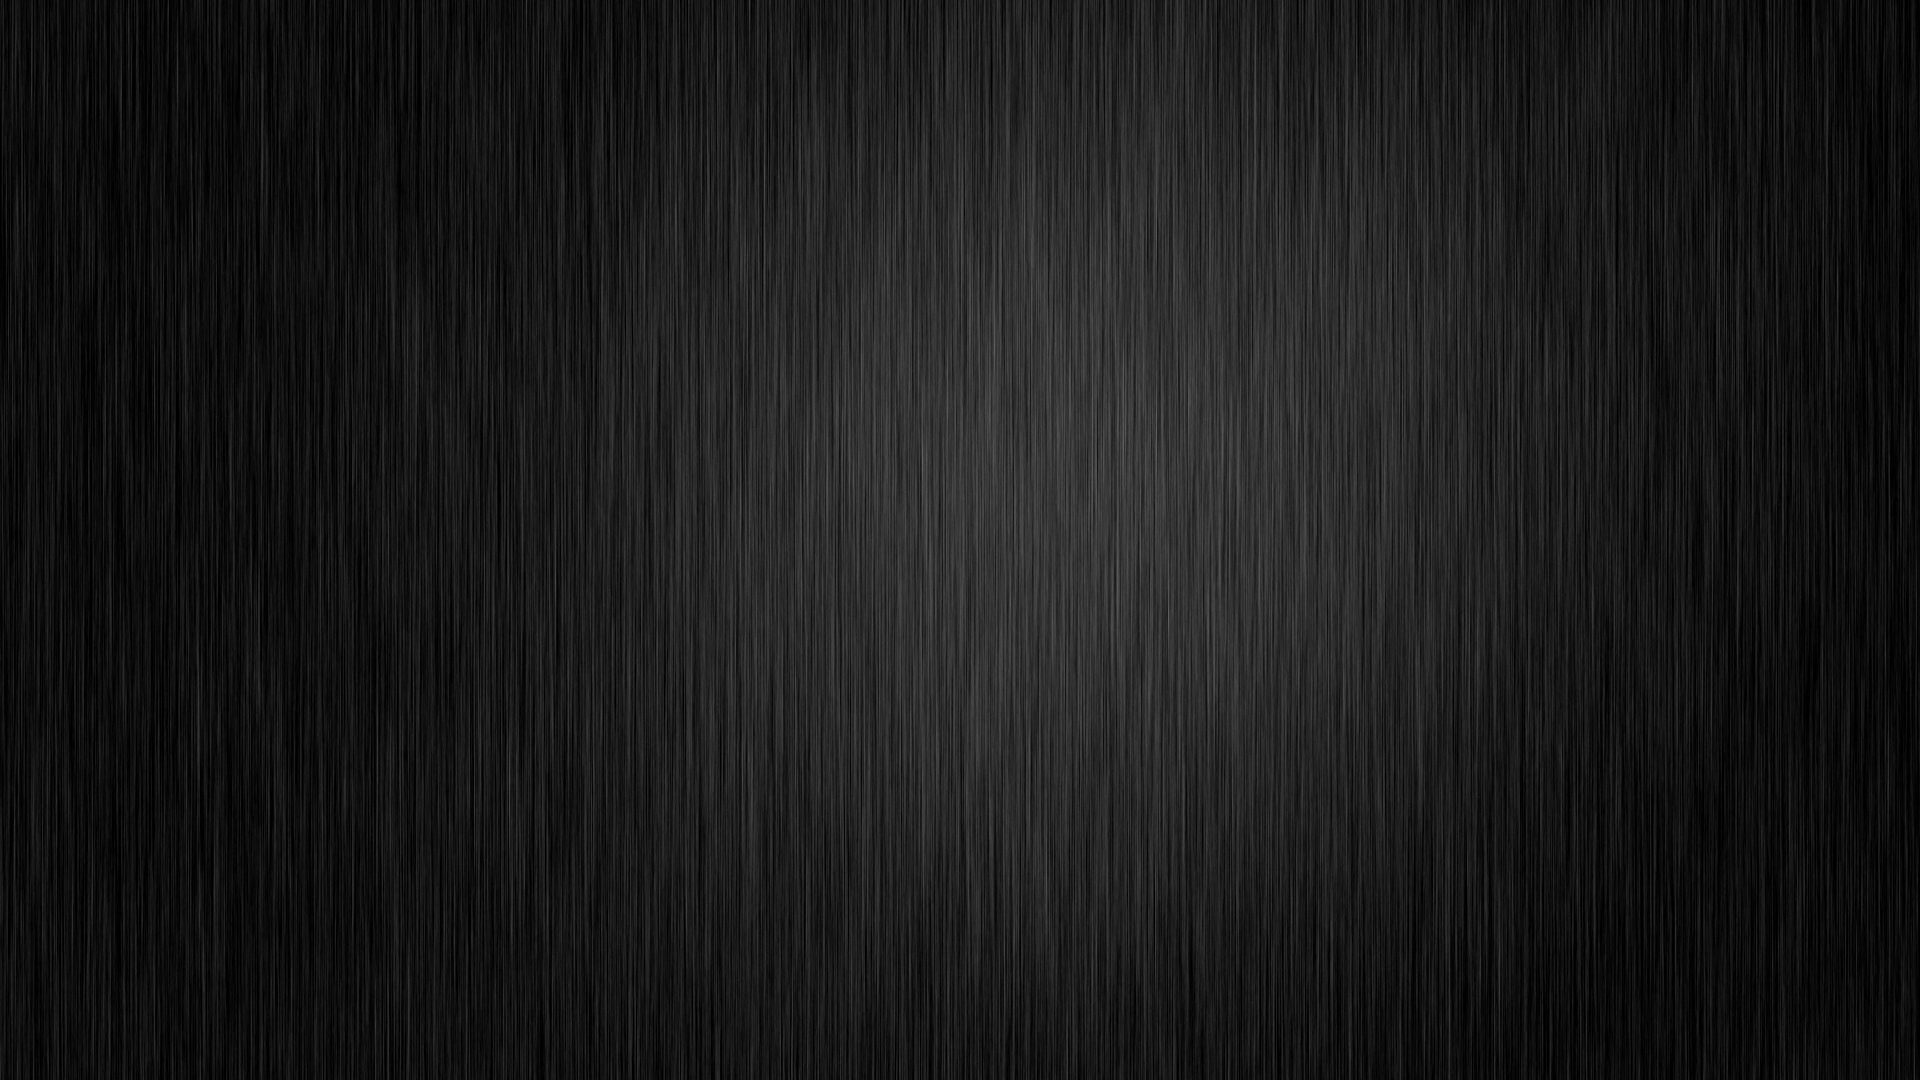 1920x1080 Black Gradient Laptop Full Hd 1080p Hd 4k Wallpapers Images Backgrounds Photos And Pictures